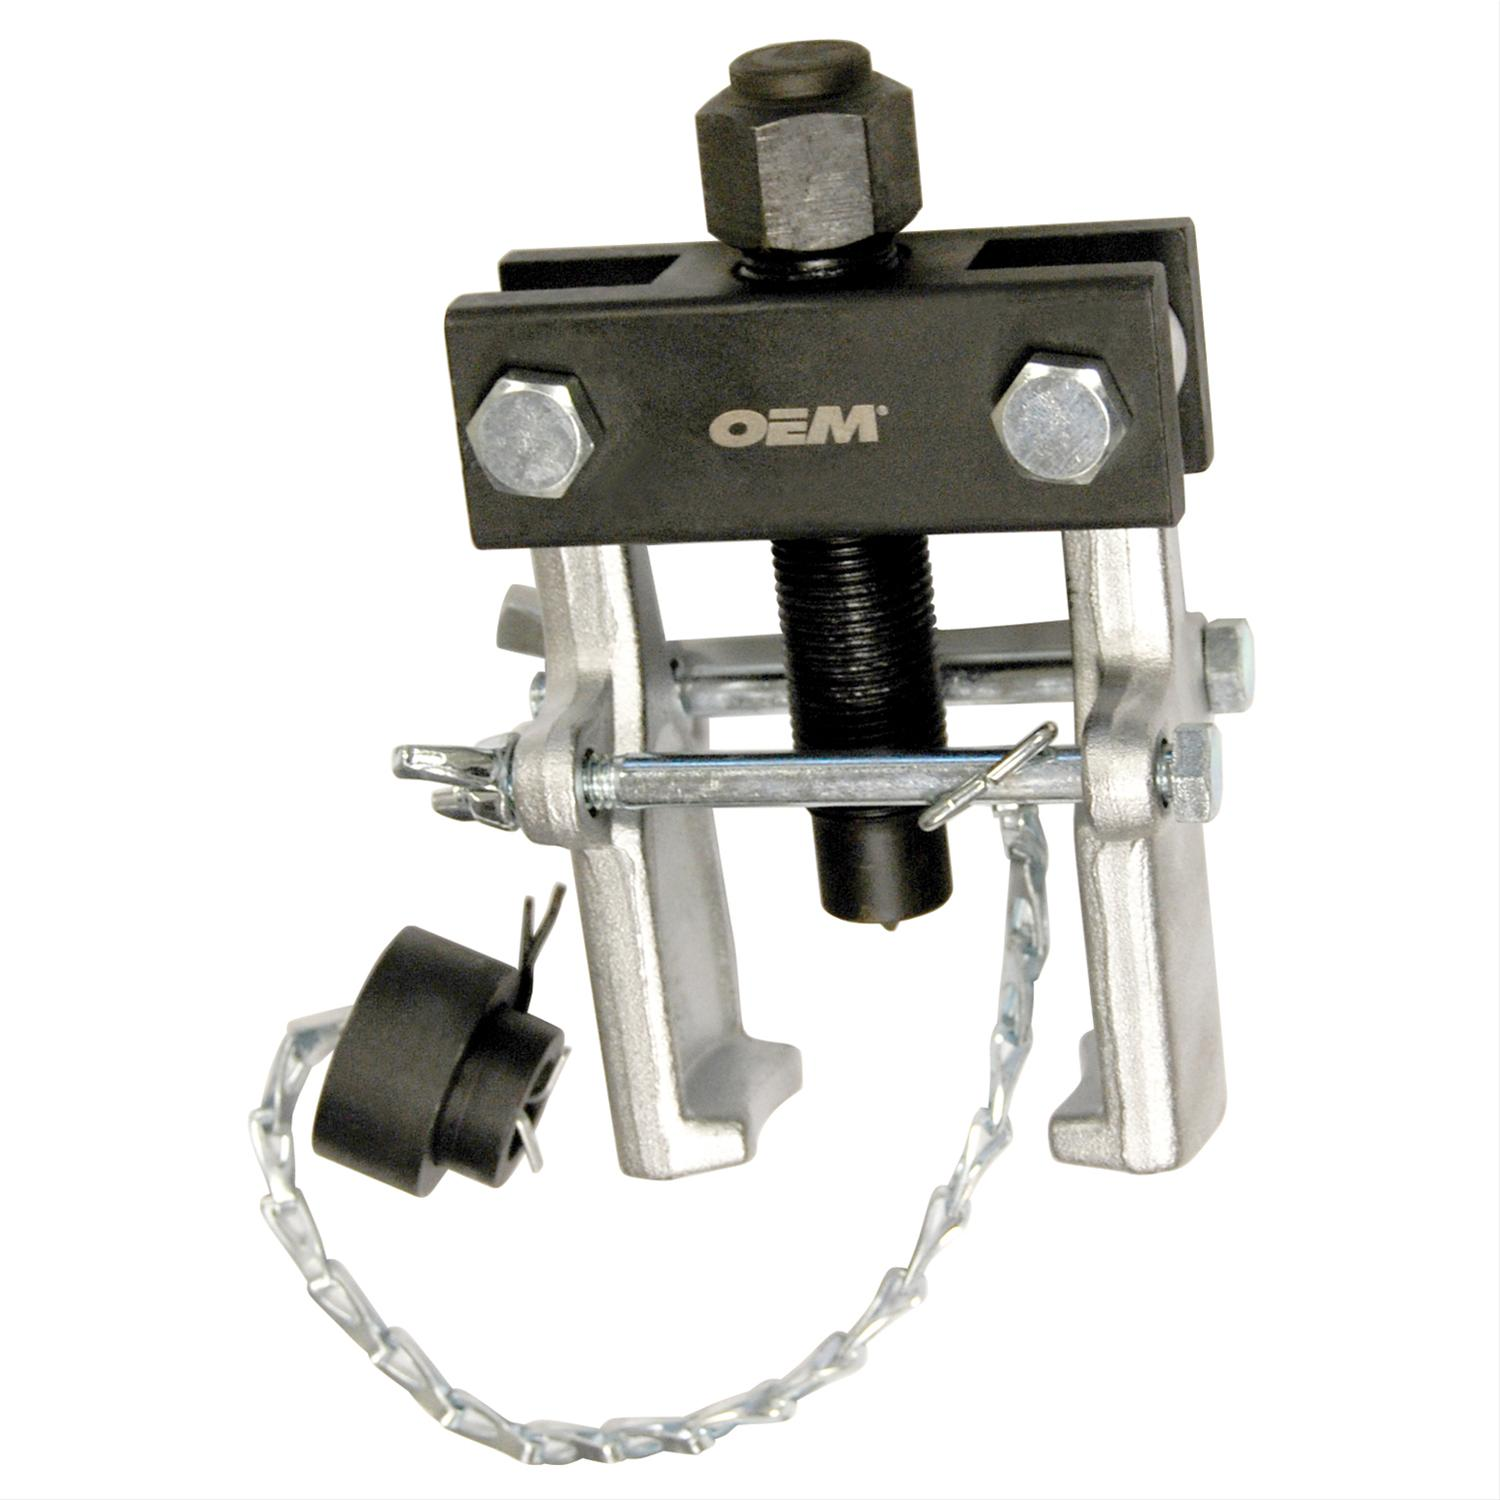 Best Gear Pullers : Specialty tools light truck pitman arm puller